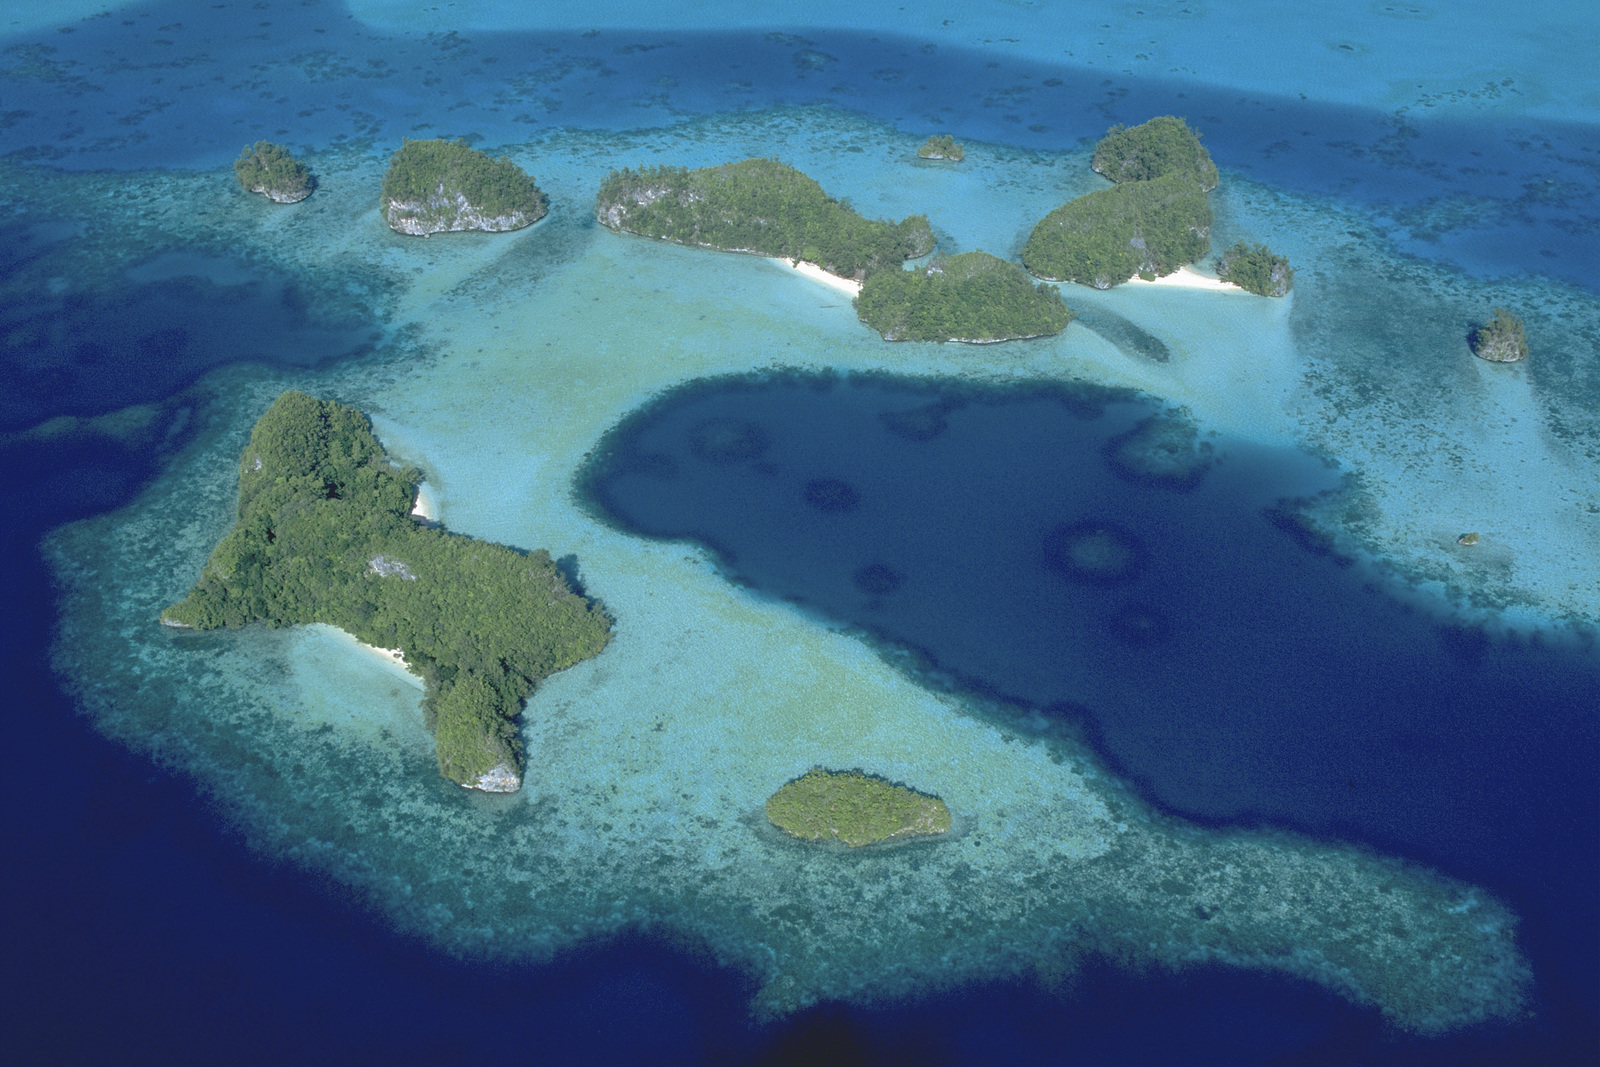 (INTERNAL RIGHTS ONLY) Aerial view of Kmekumer, Rock Islands, Republic of Palau, Palau, Asia Pacific. Photo credit: © Jez O'Hare